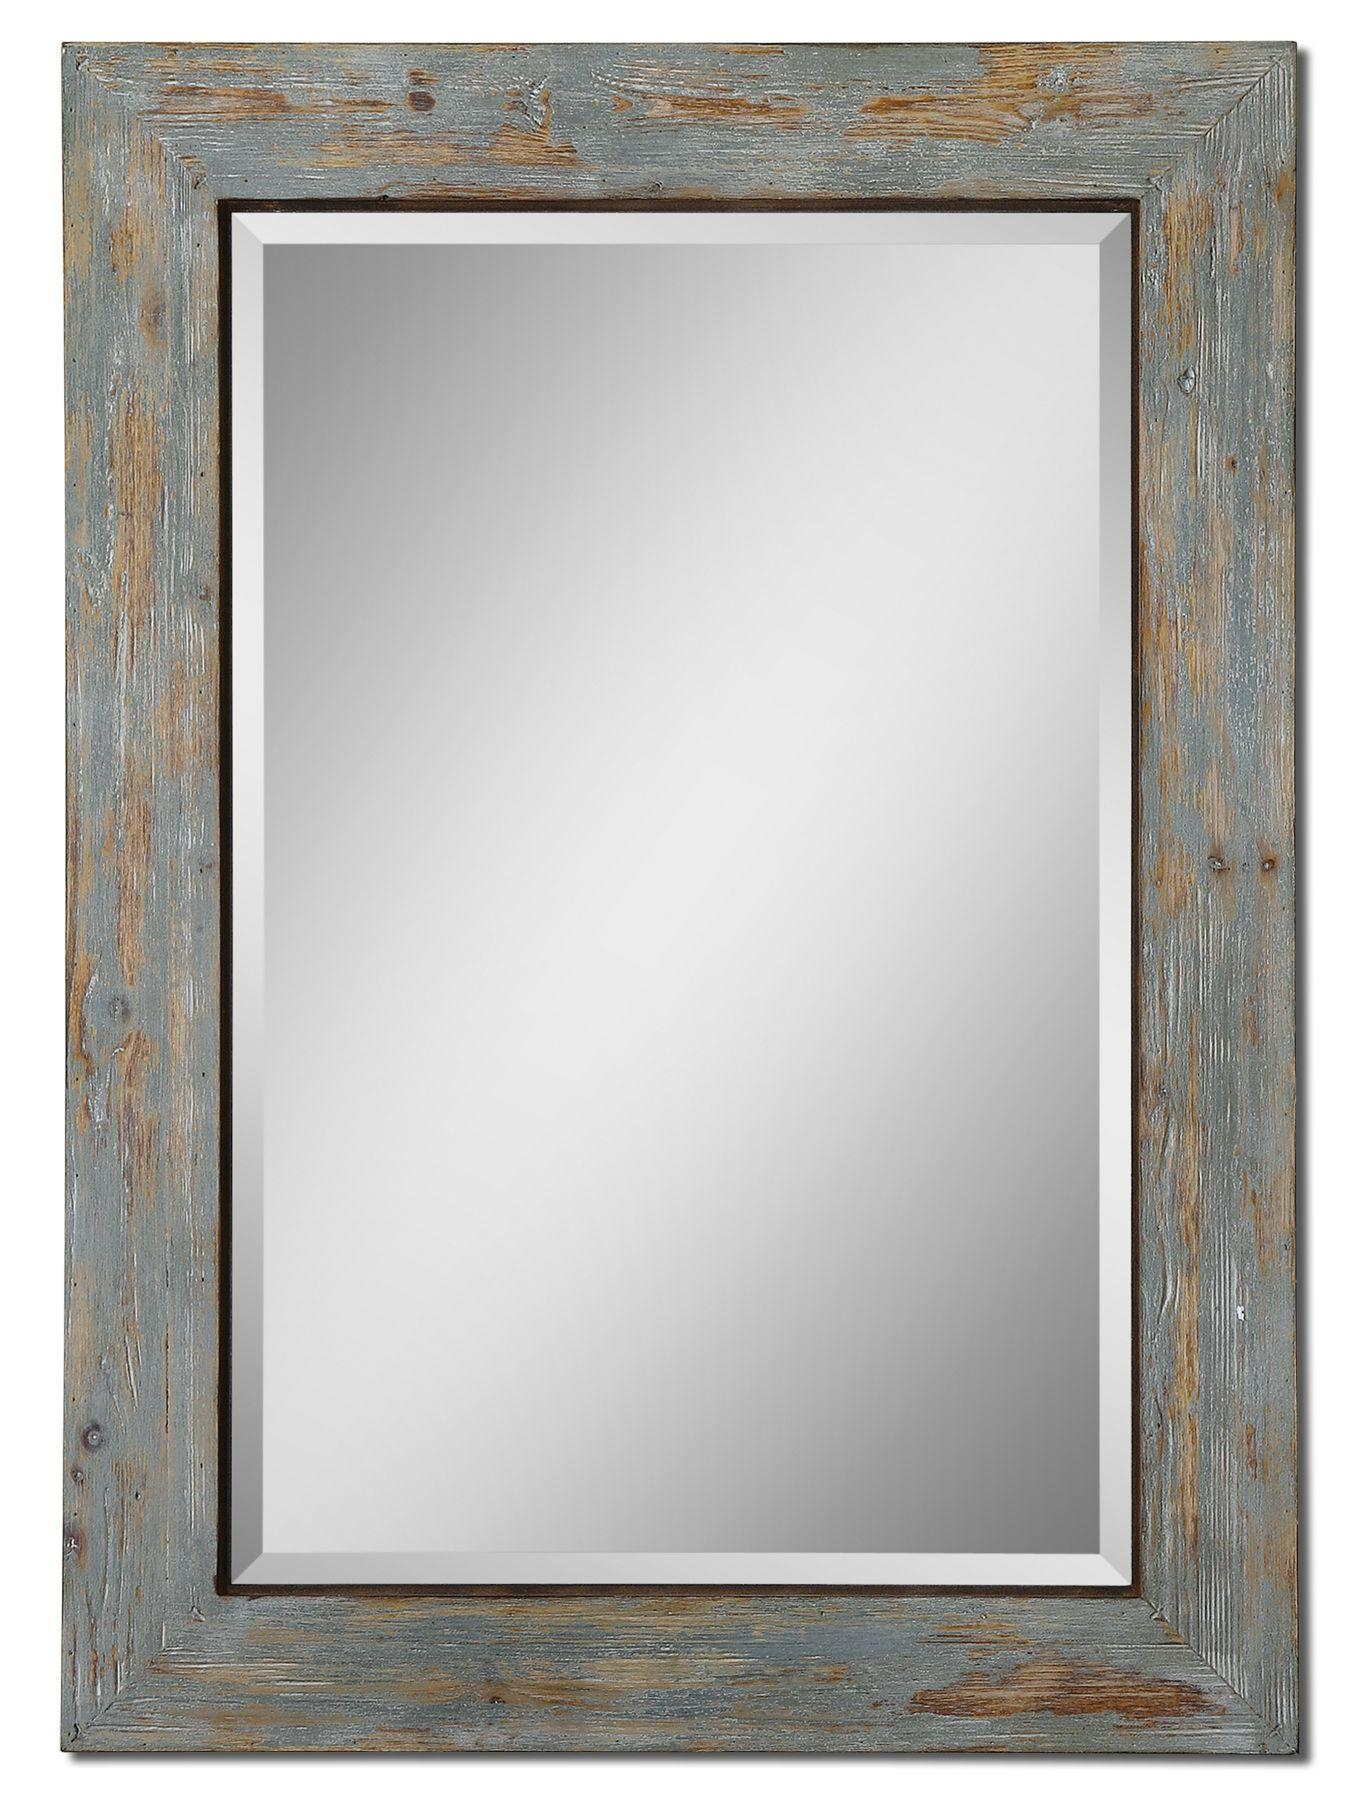 Uttermost Altino Distressed Wood Mirror 13818 Regarding Distressed Framed Mirror (Photo 5 of 20)